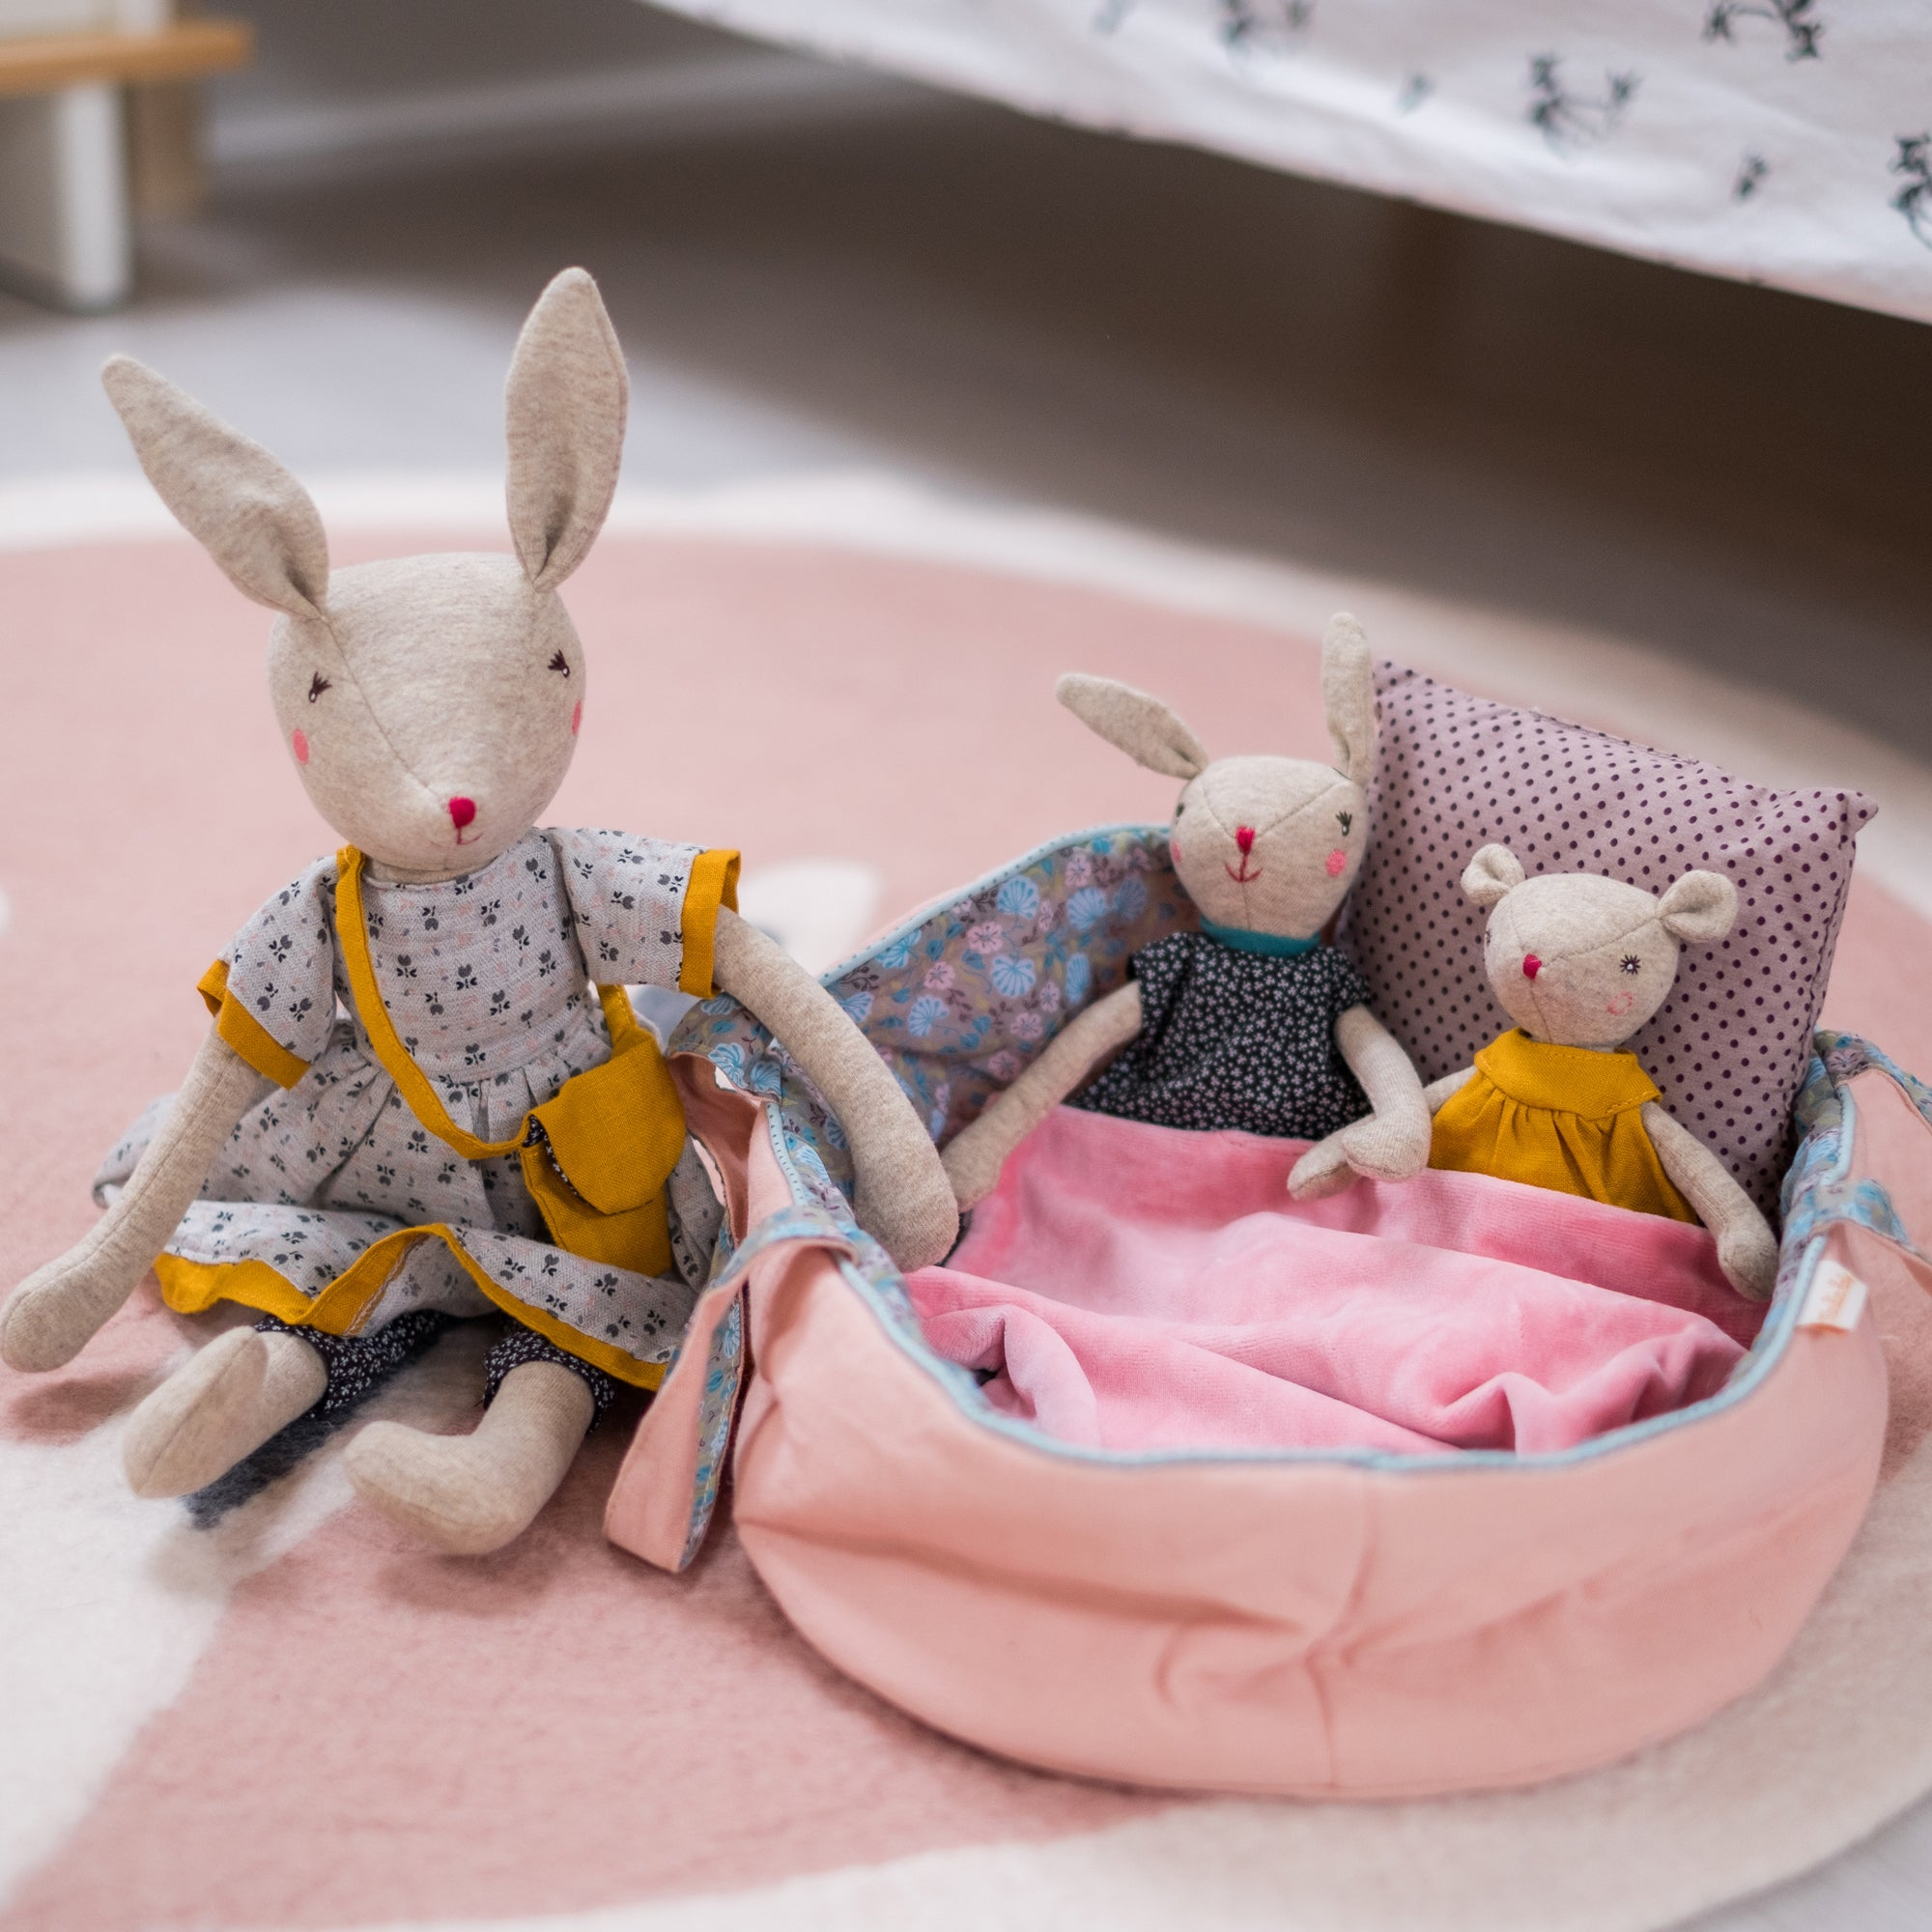 Moulin Roty Mirabelle Soft Toy Family, available at Bobby Rabbit.